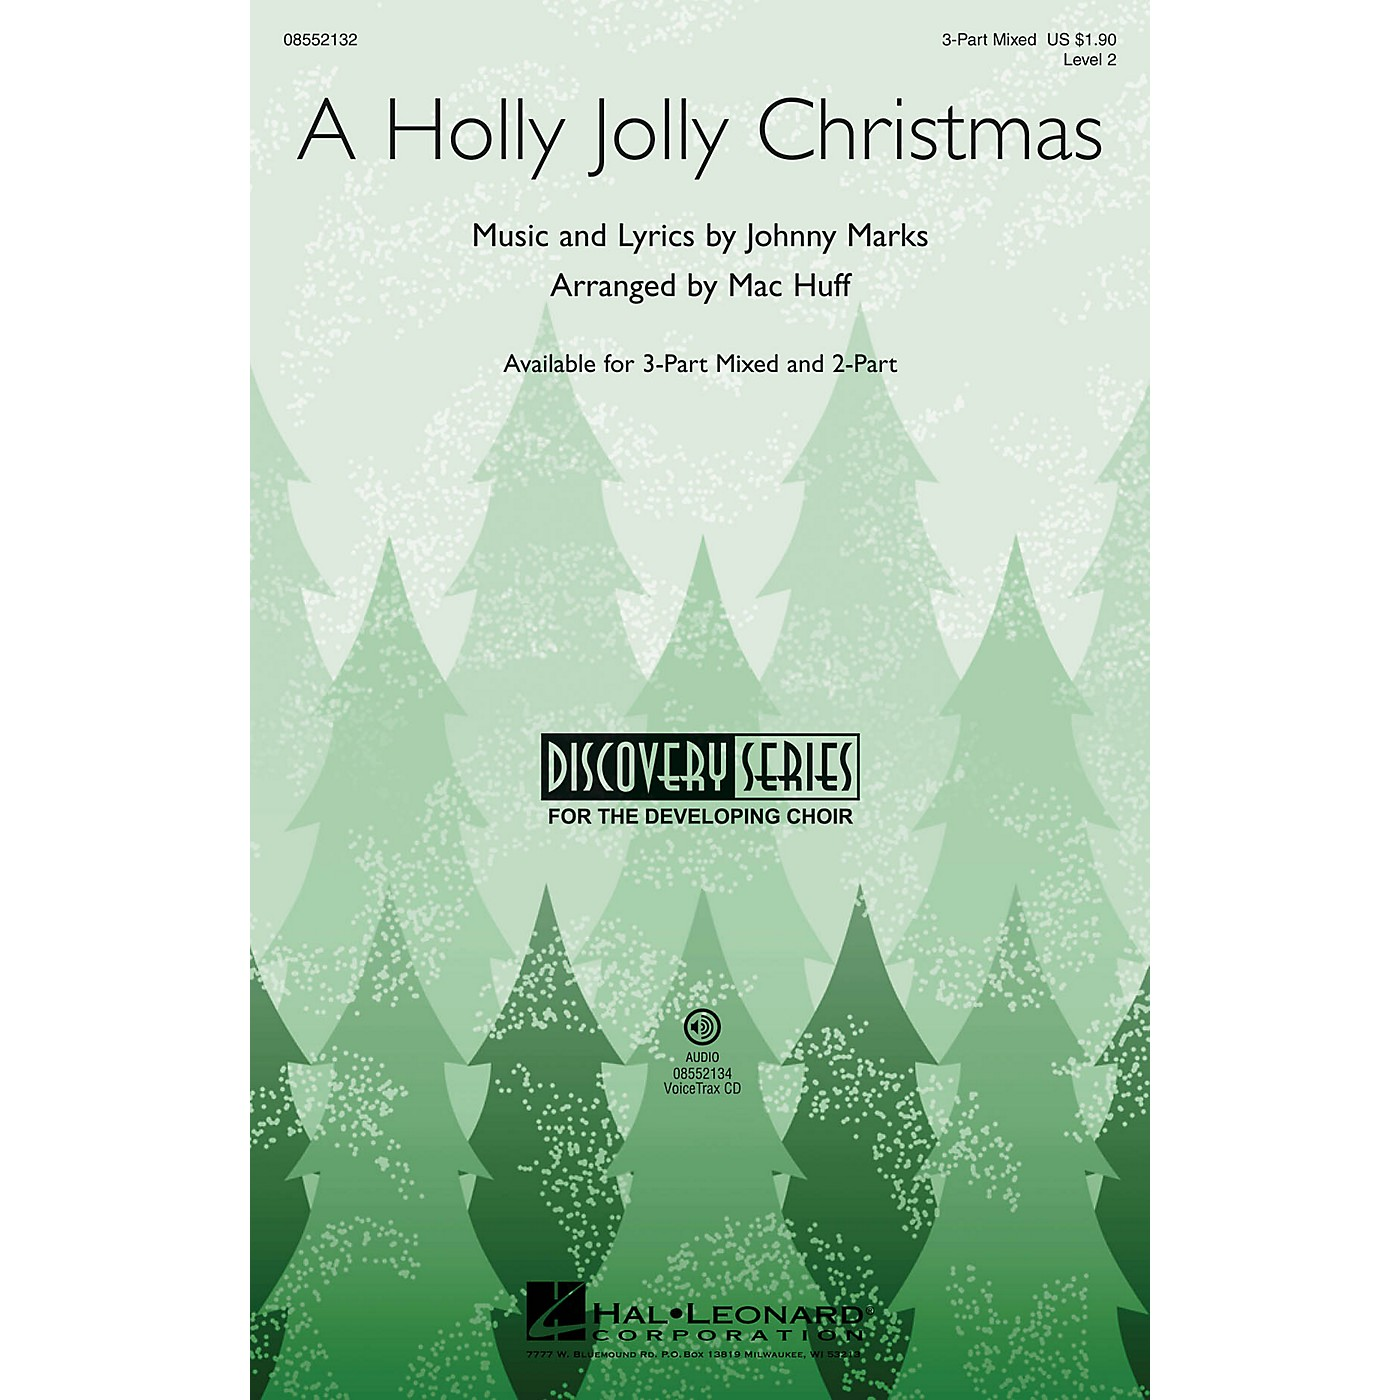 Hal Leonard A Holly Jolly Christmas (Discovery Level 2) VoiceTrax CD by Burl Ives Arranged by Mac Huff thumbnail